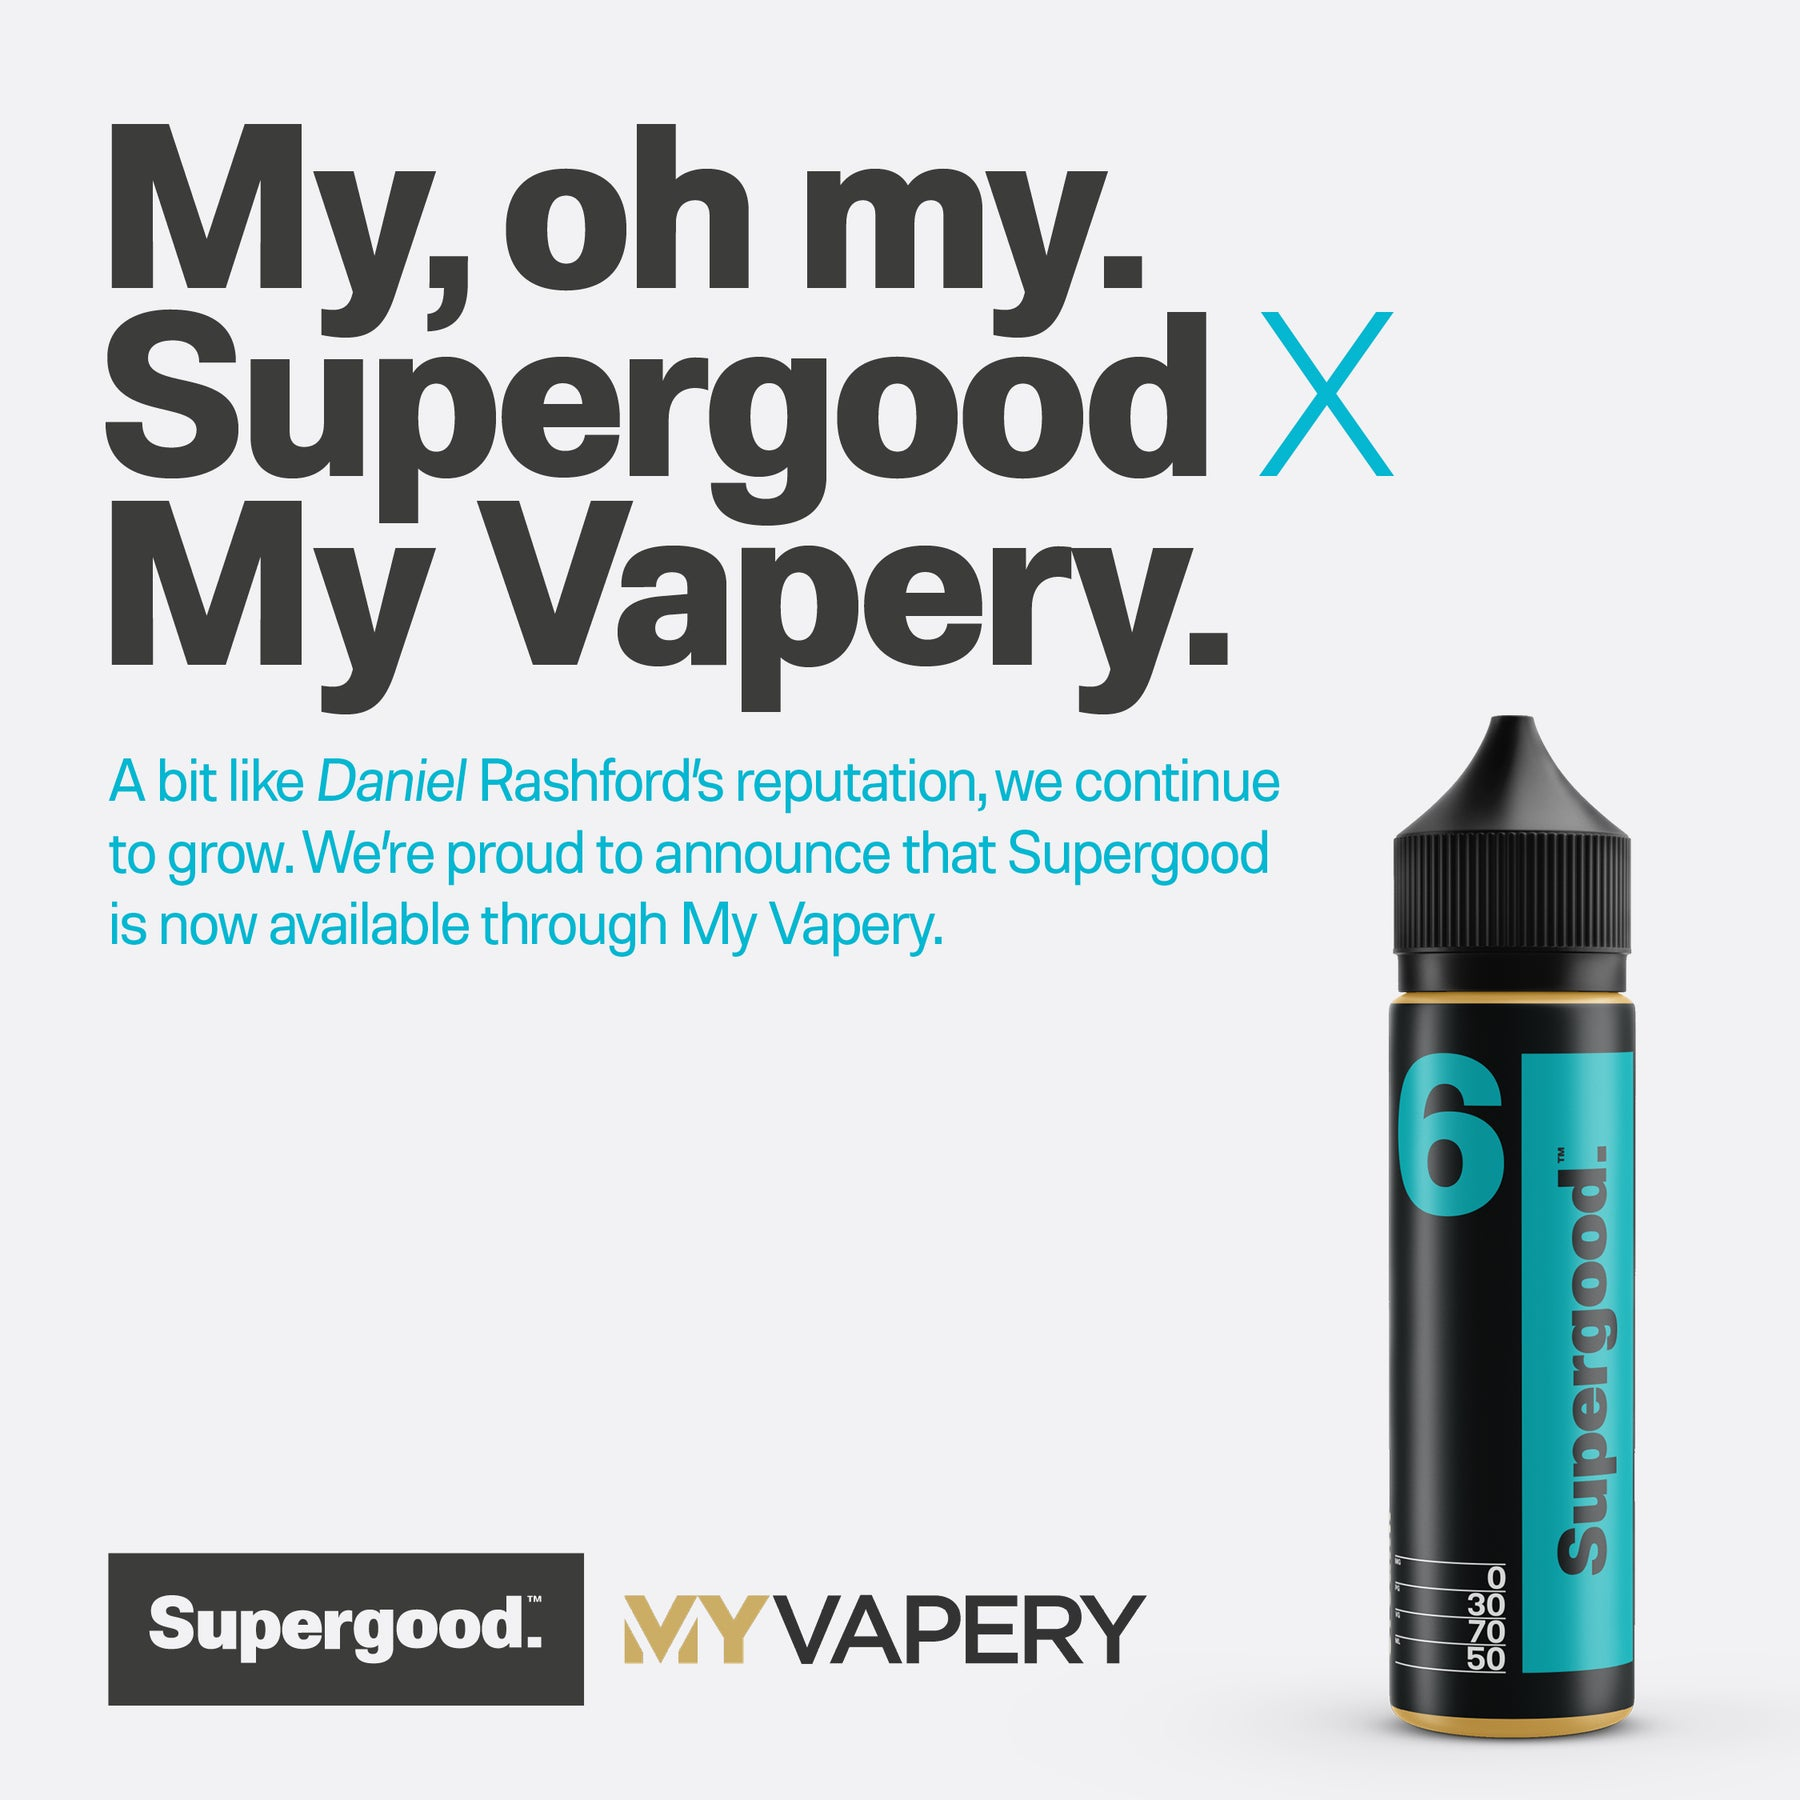 Supergood x My Vapery